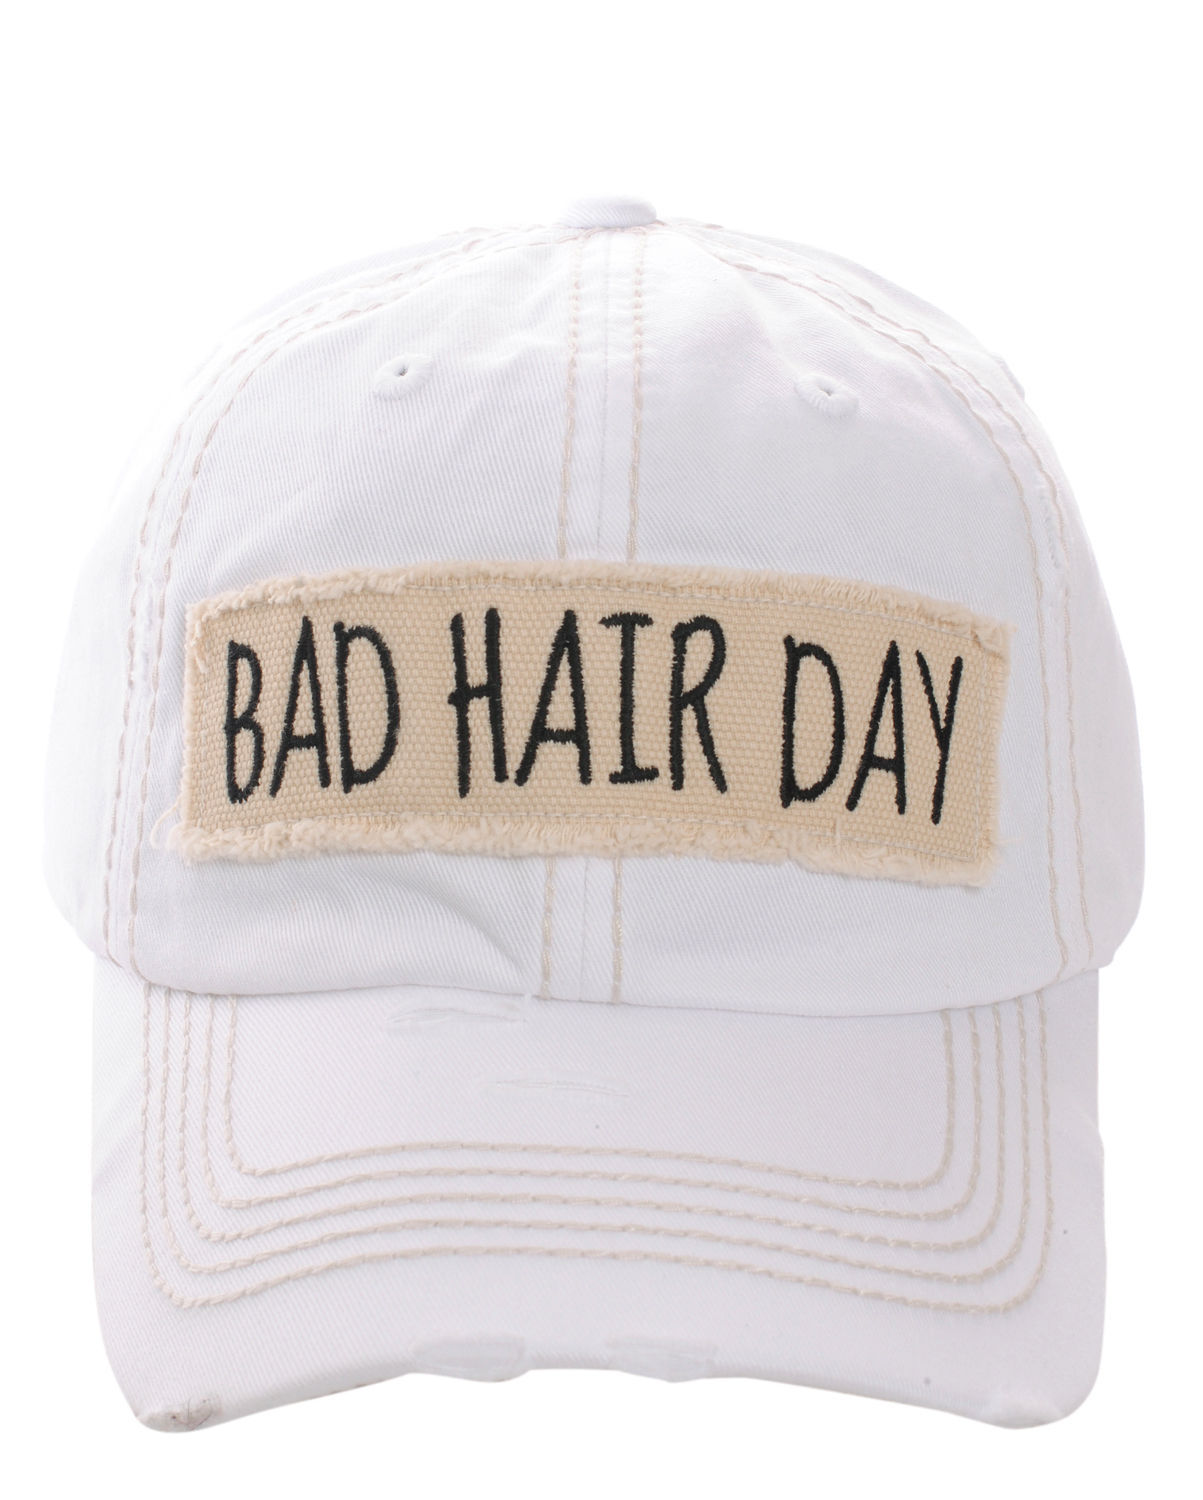 Distressed Vintage Country Style Bad Hair Day Baseball Cap Hat Adjustable White